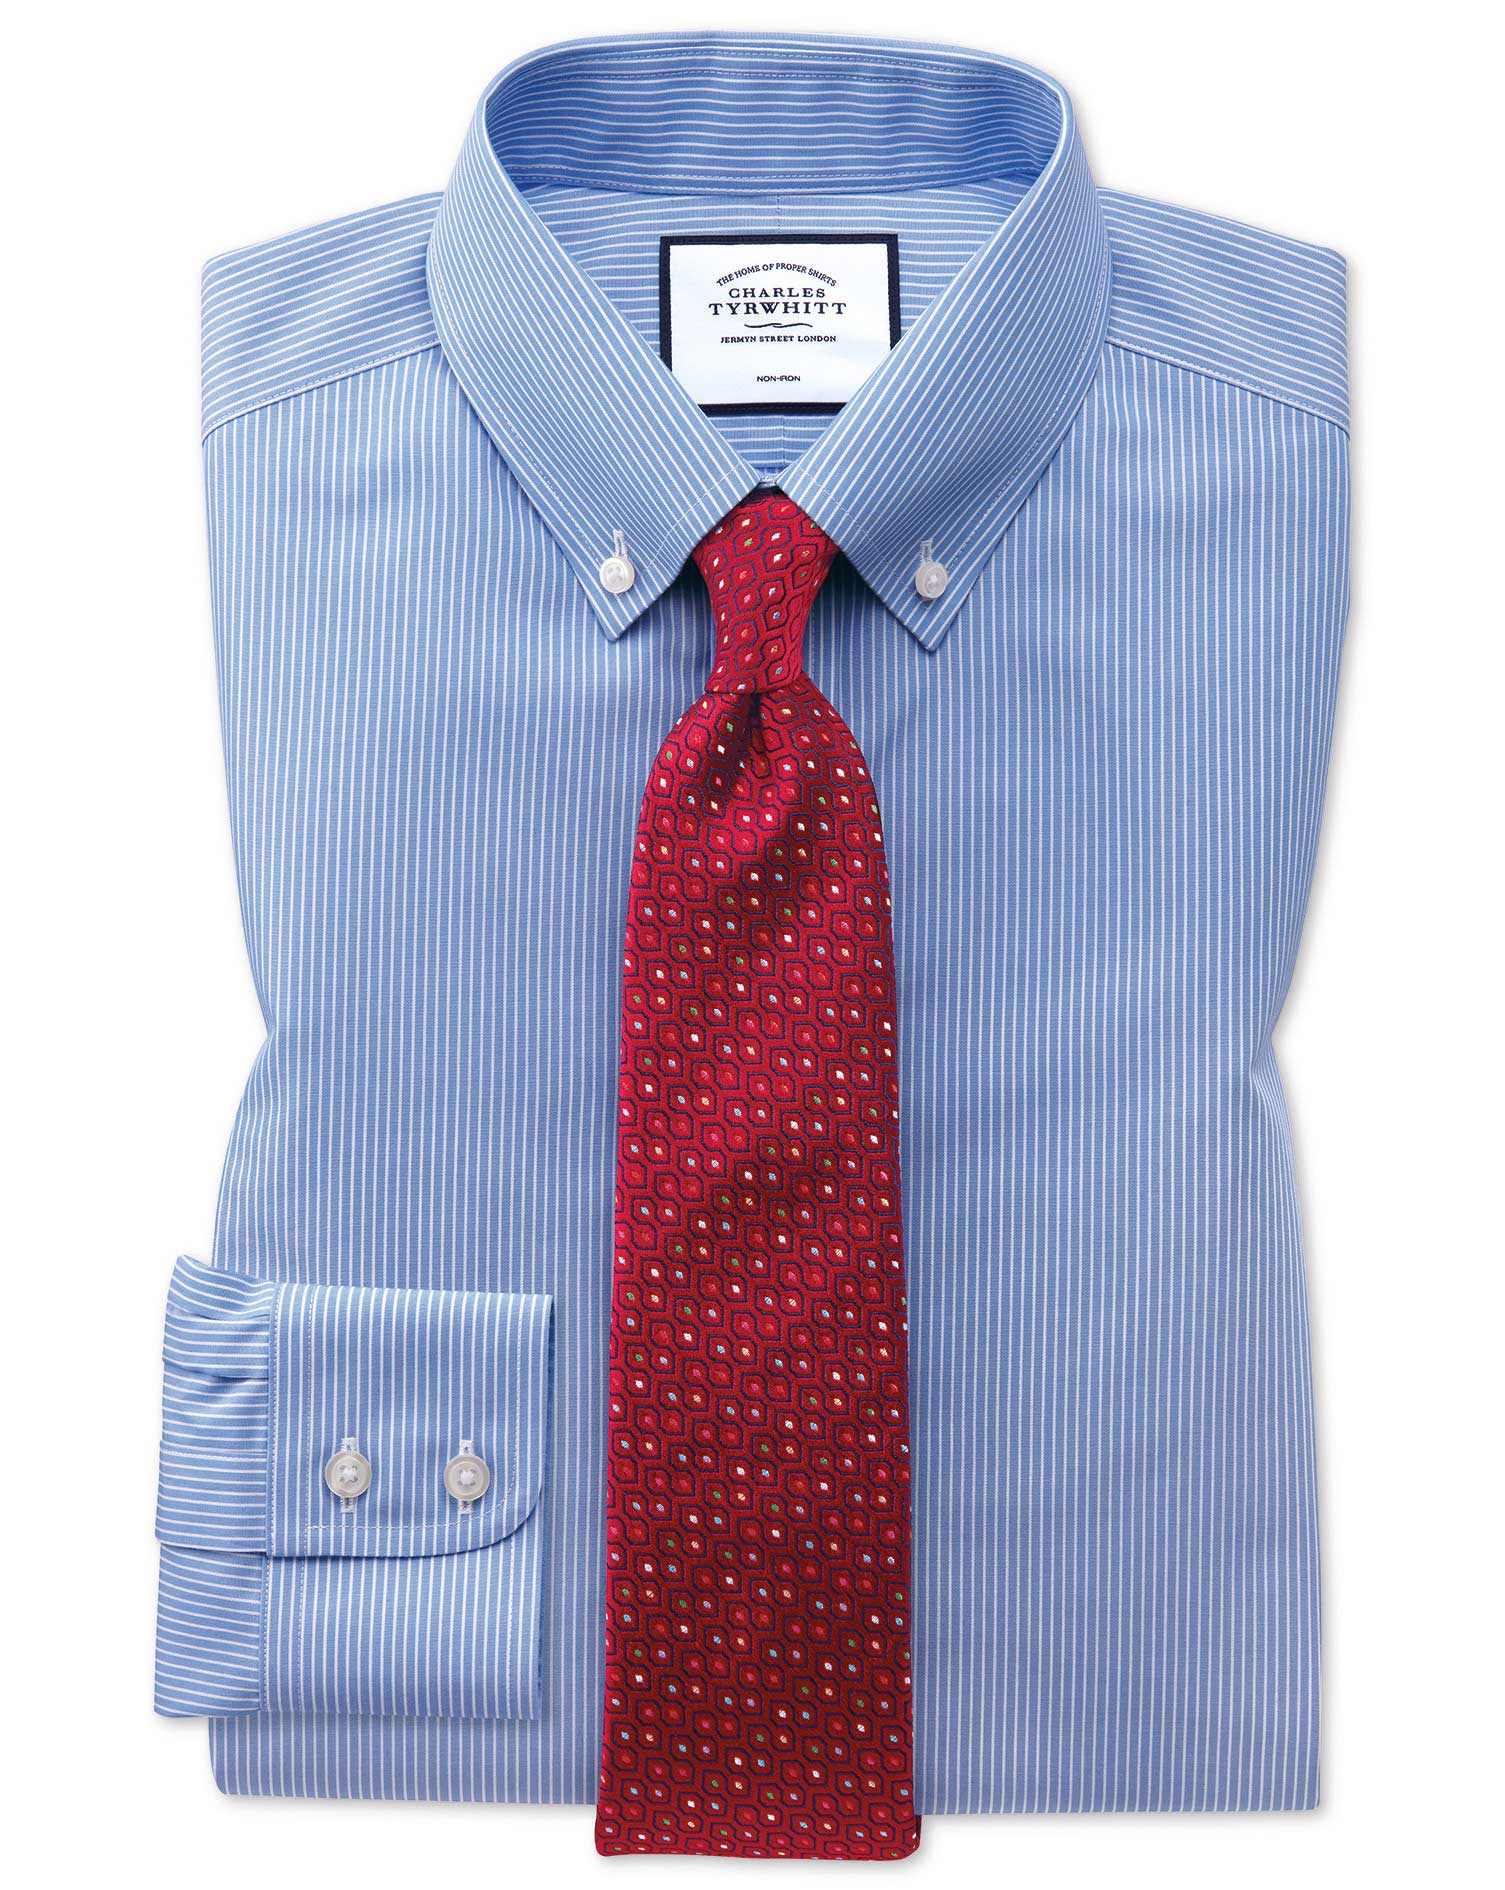 Slim Fit Button-Down Non-Iron Blue and White Stripe Cotton Formal Shirt Single Cuff Size 14.5/33 by